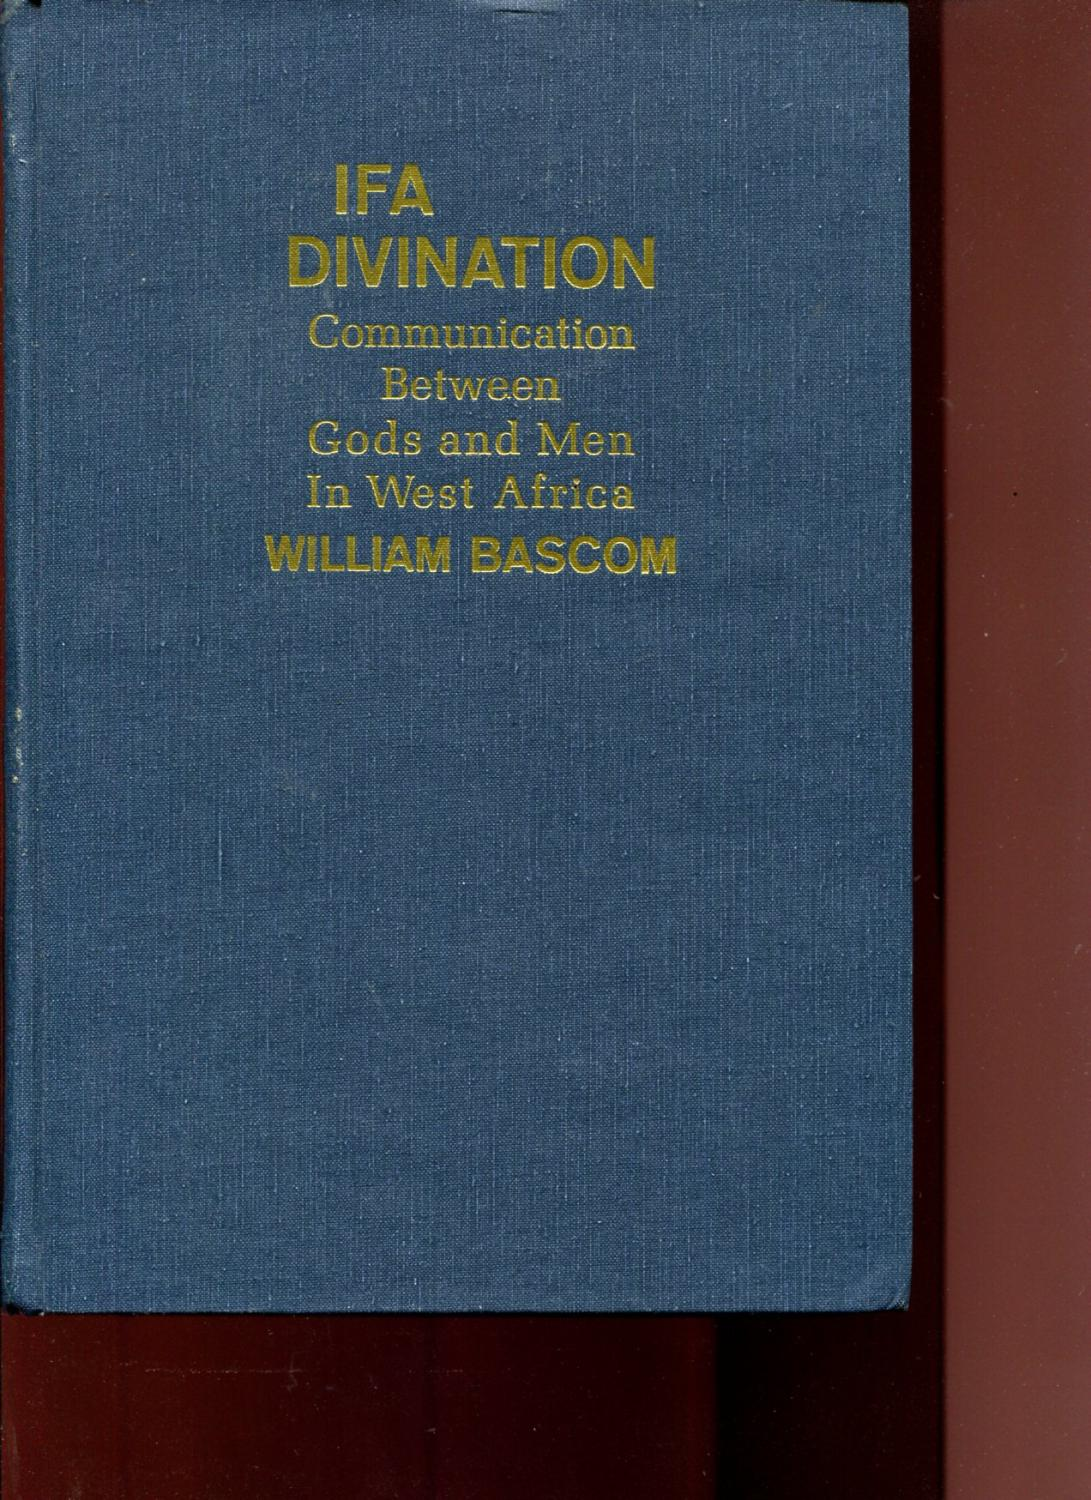 IFA Divination. Communication Between Gods and Men in West Africa